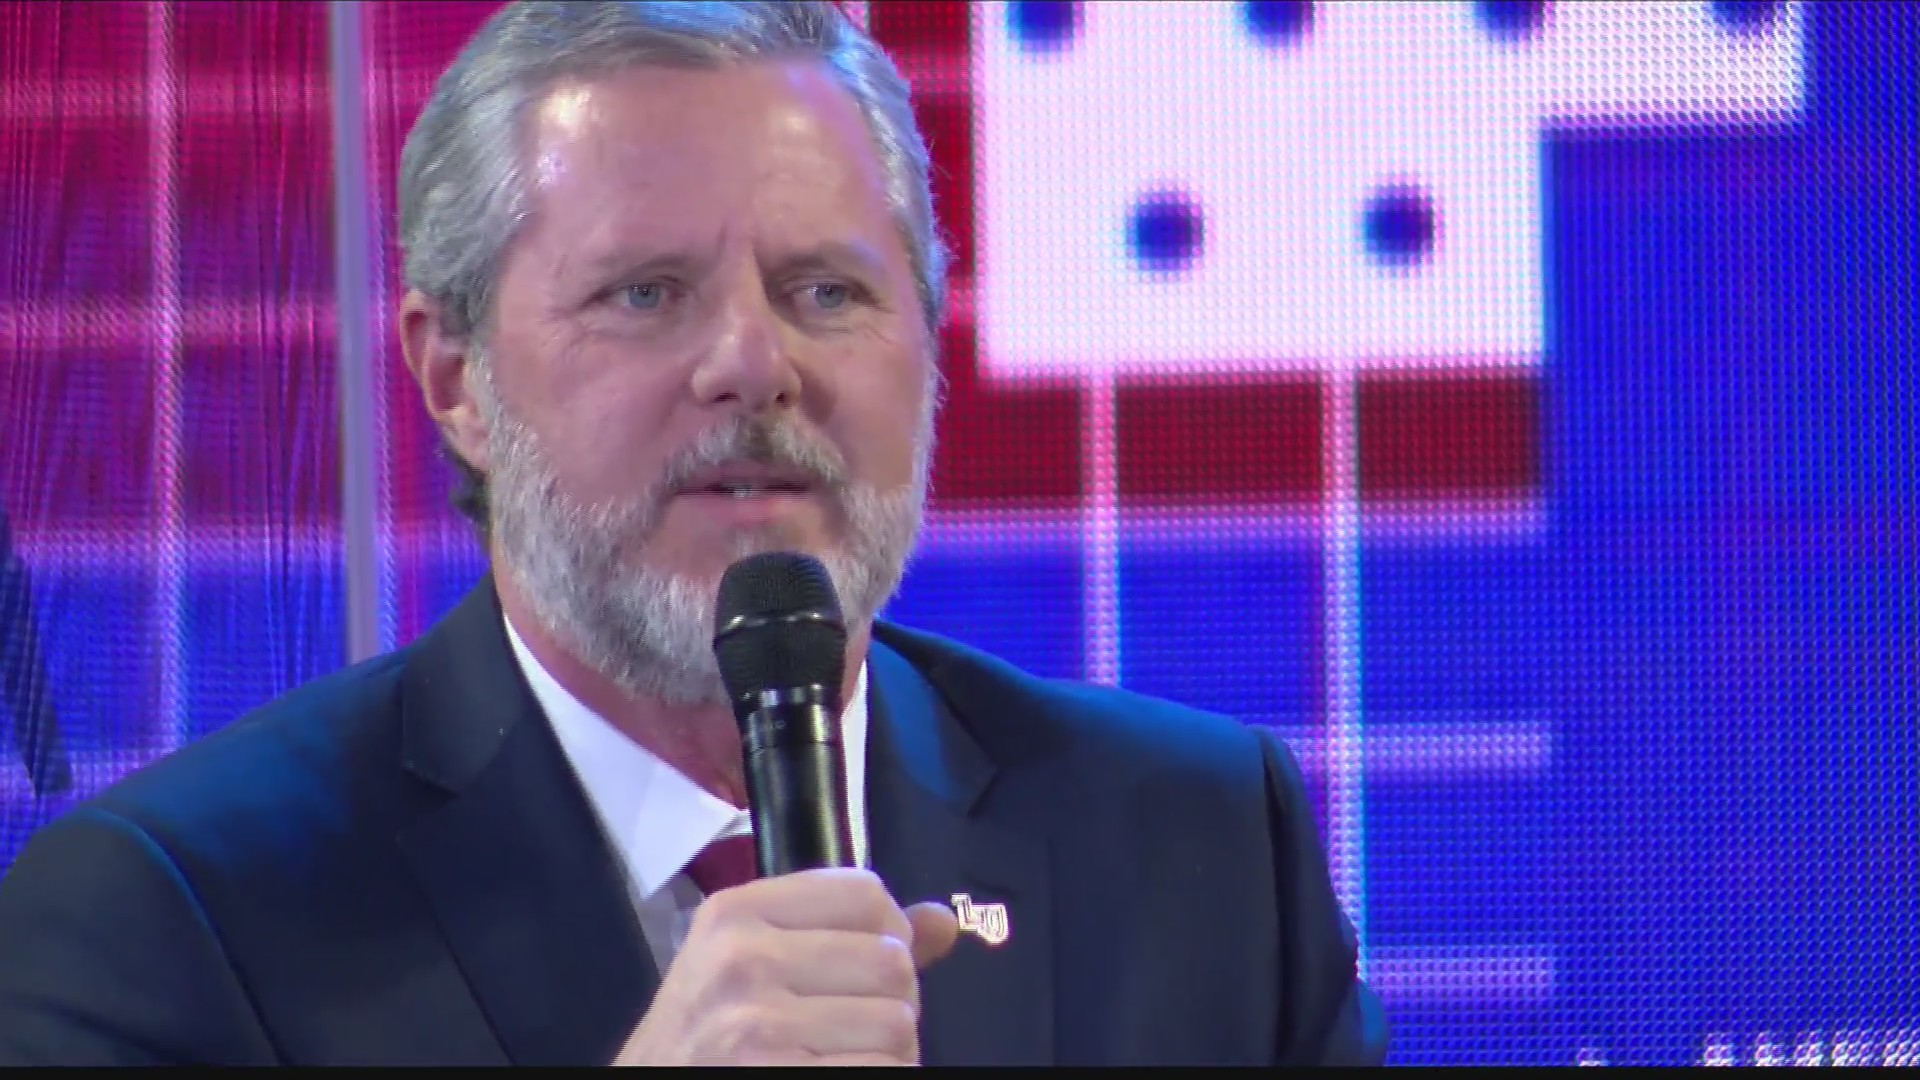 Falwell's involvement in national politics highlighted by alleged Cohen interaction